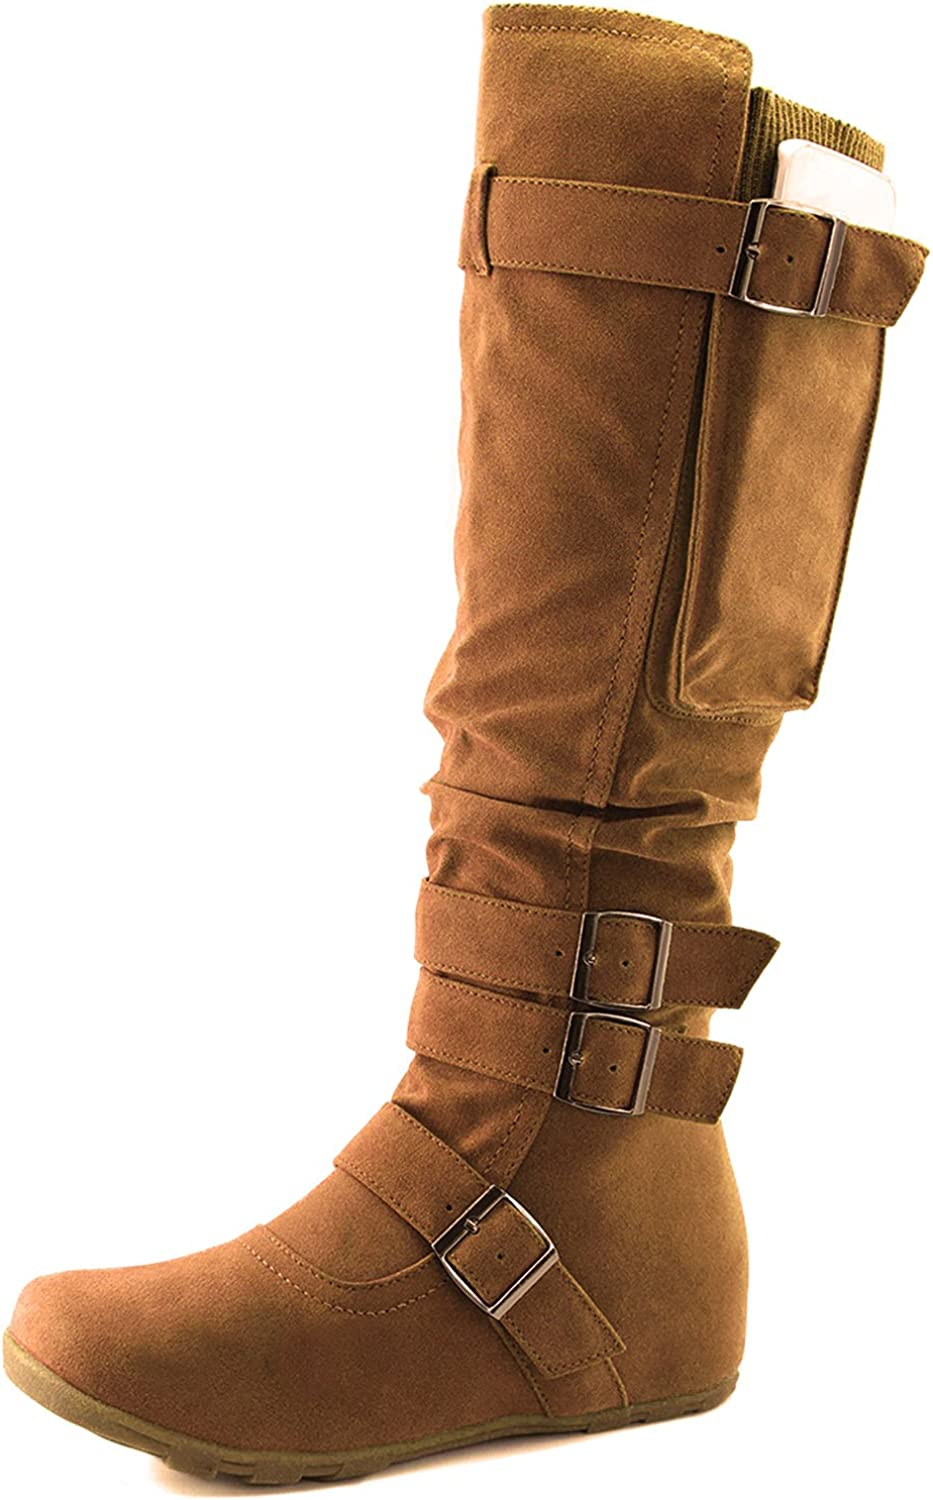 Dailyshoes Women's Mid Calf Slouch Hidden Wedge Comfortable Slip On Round Toe Flat Heel Knee High Boots